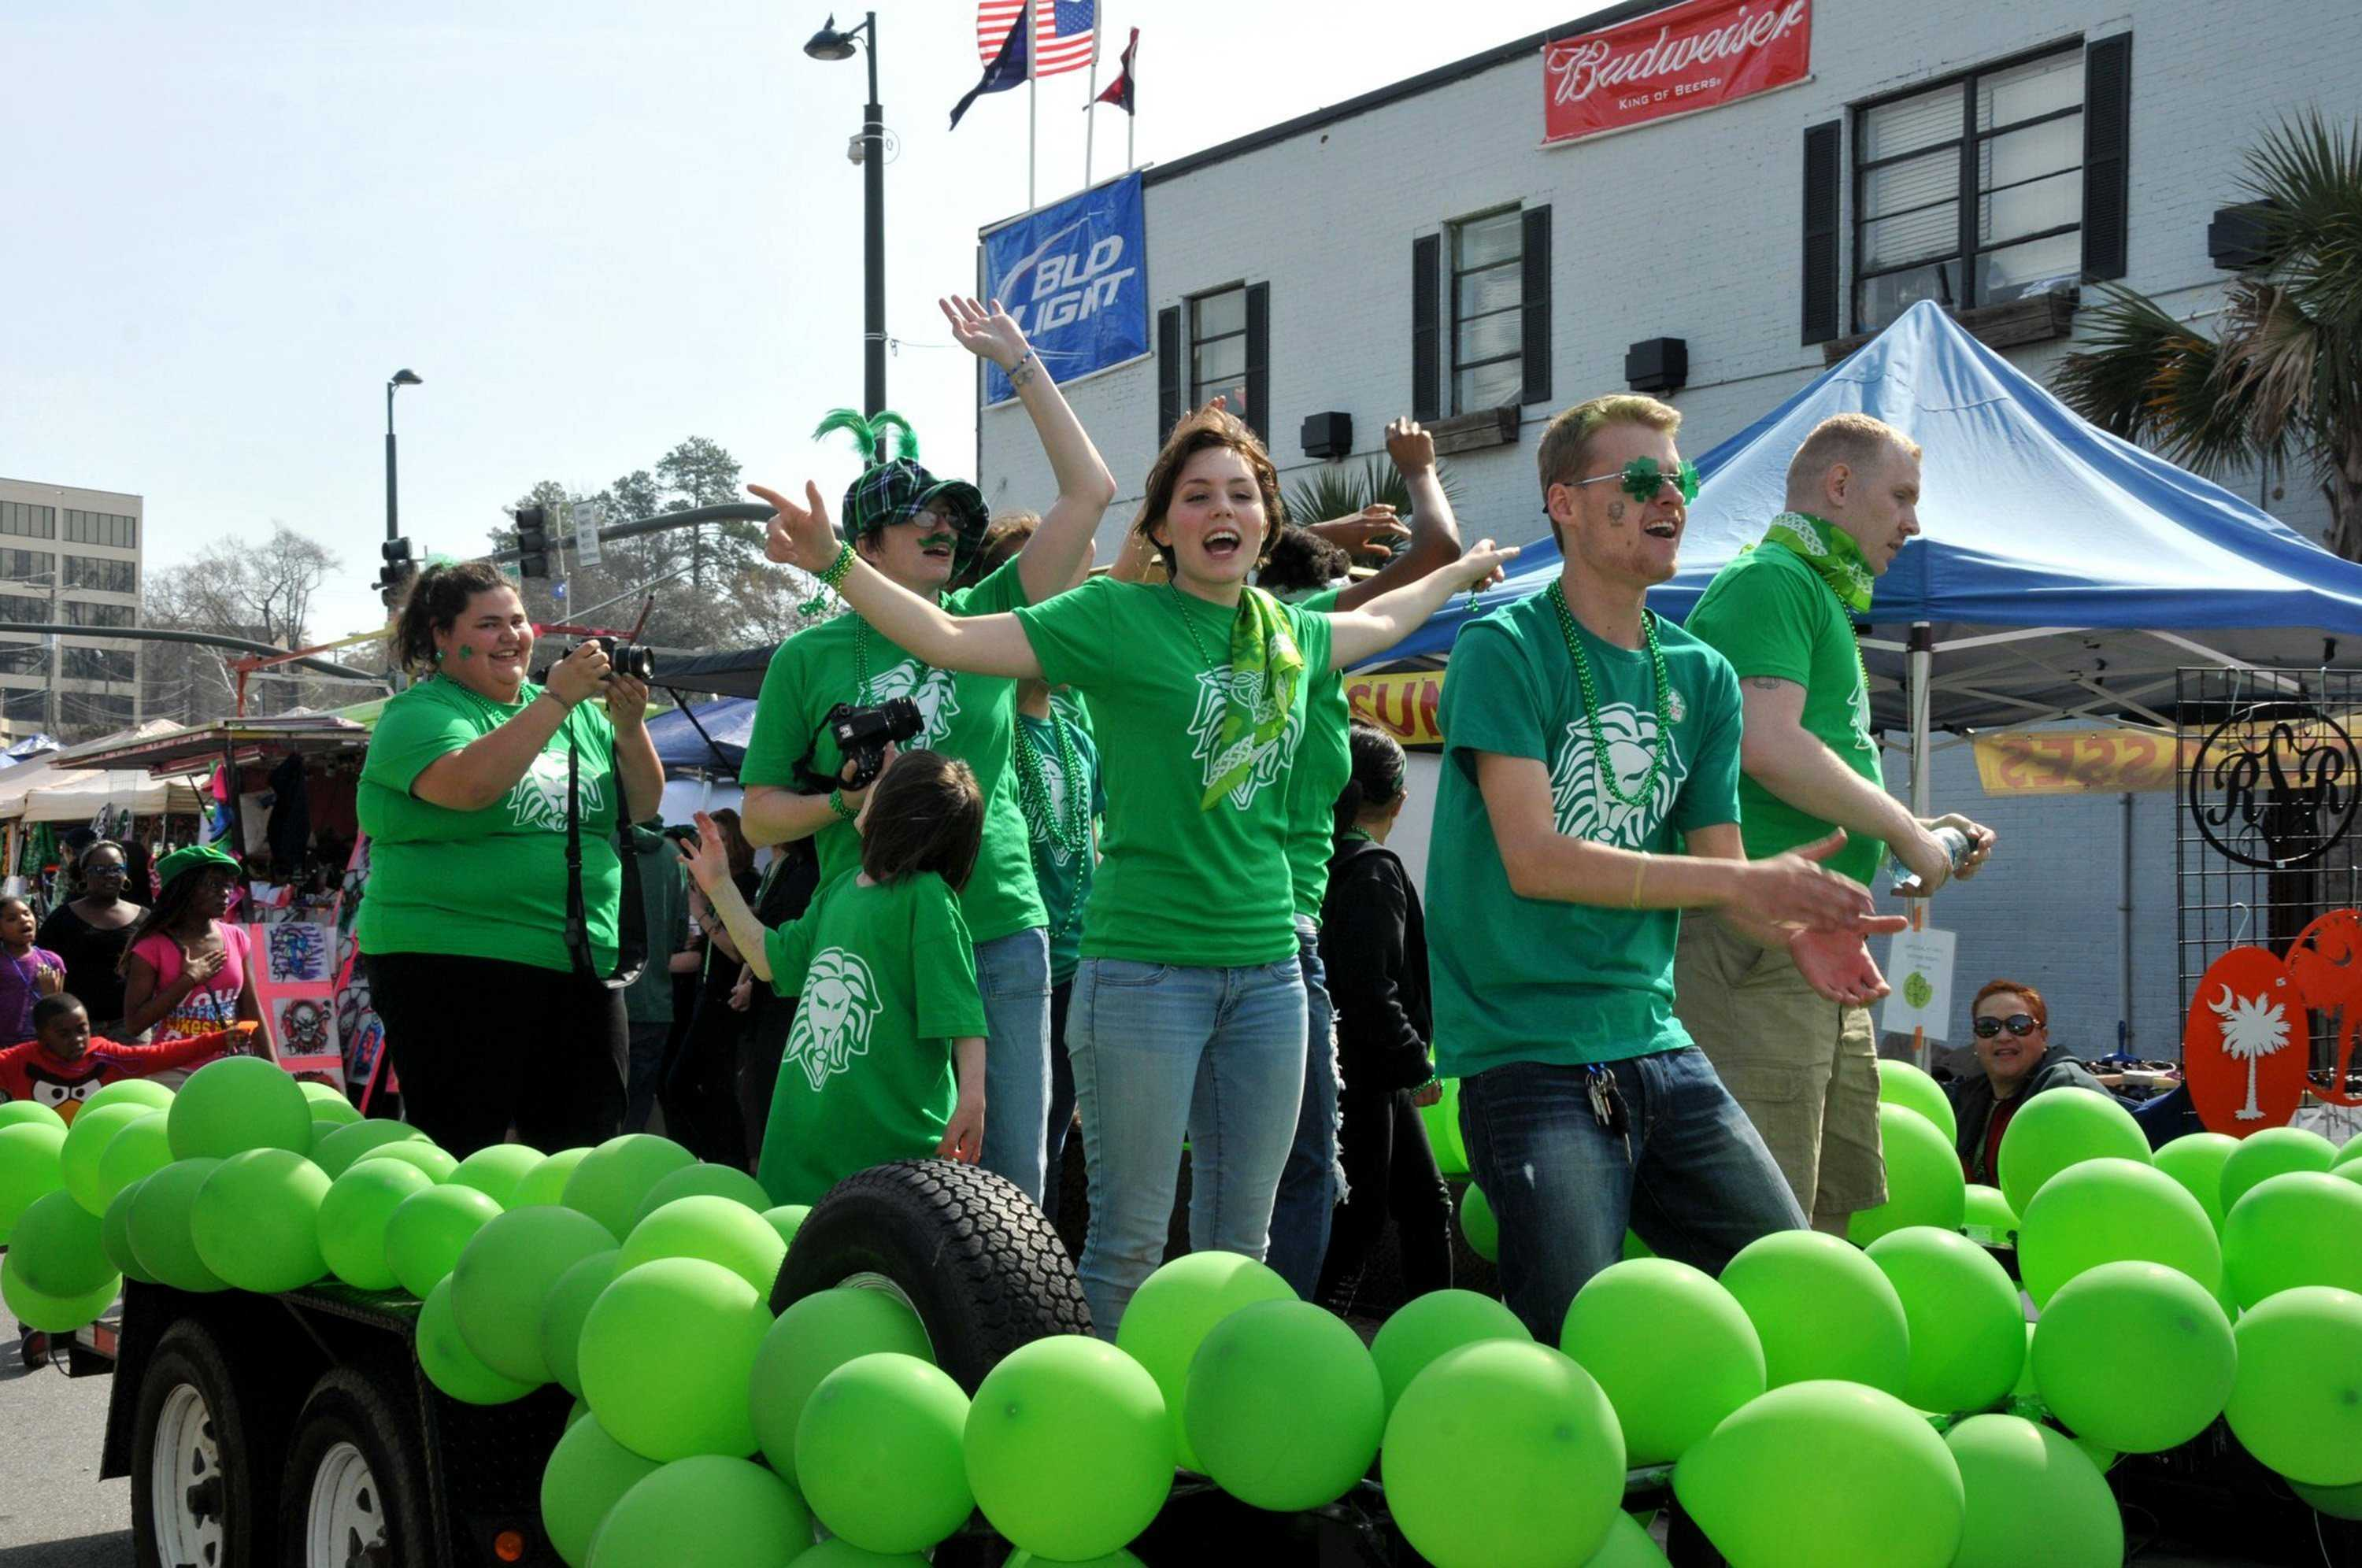 A church group called Decided sings from the float during a St. Patrick's Day parade in Columbia, S.C., Saturday, March 15, 2014. (Rob Thompson/The State/MCT)